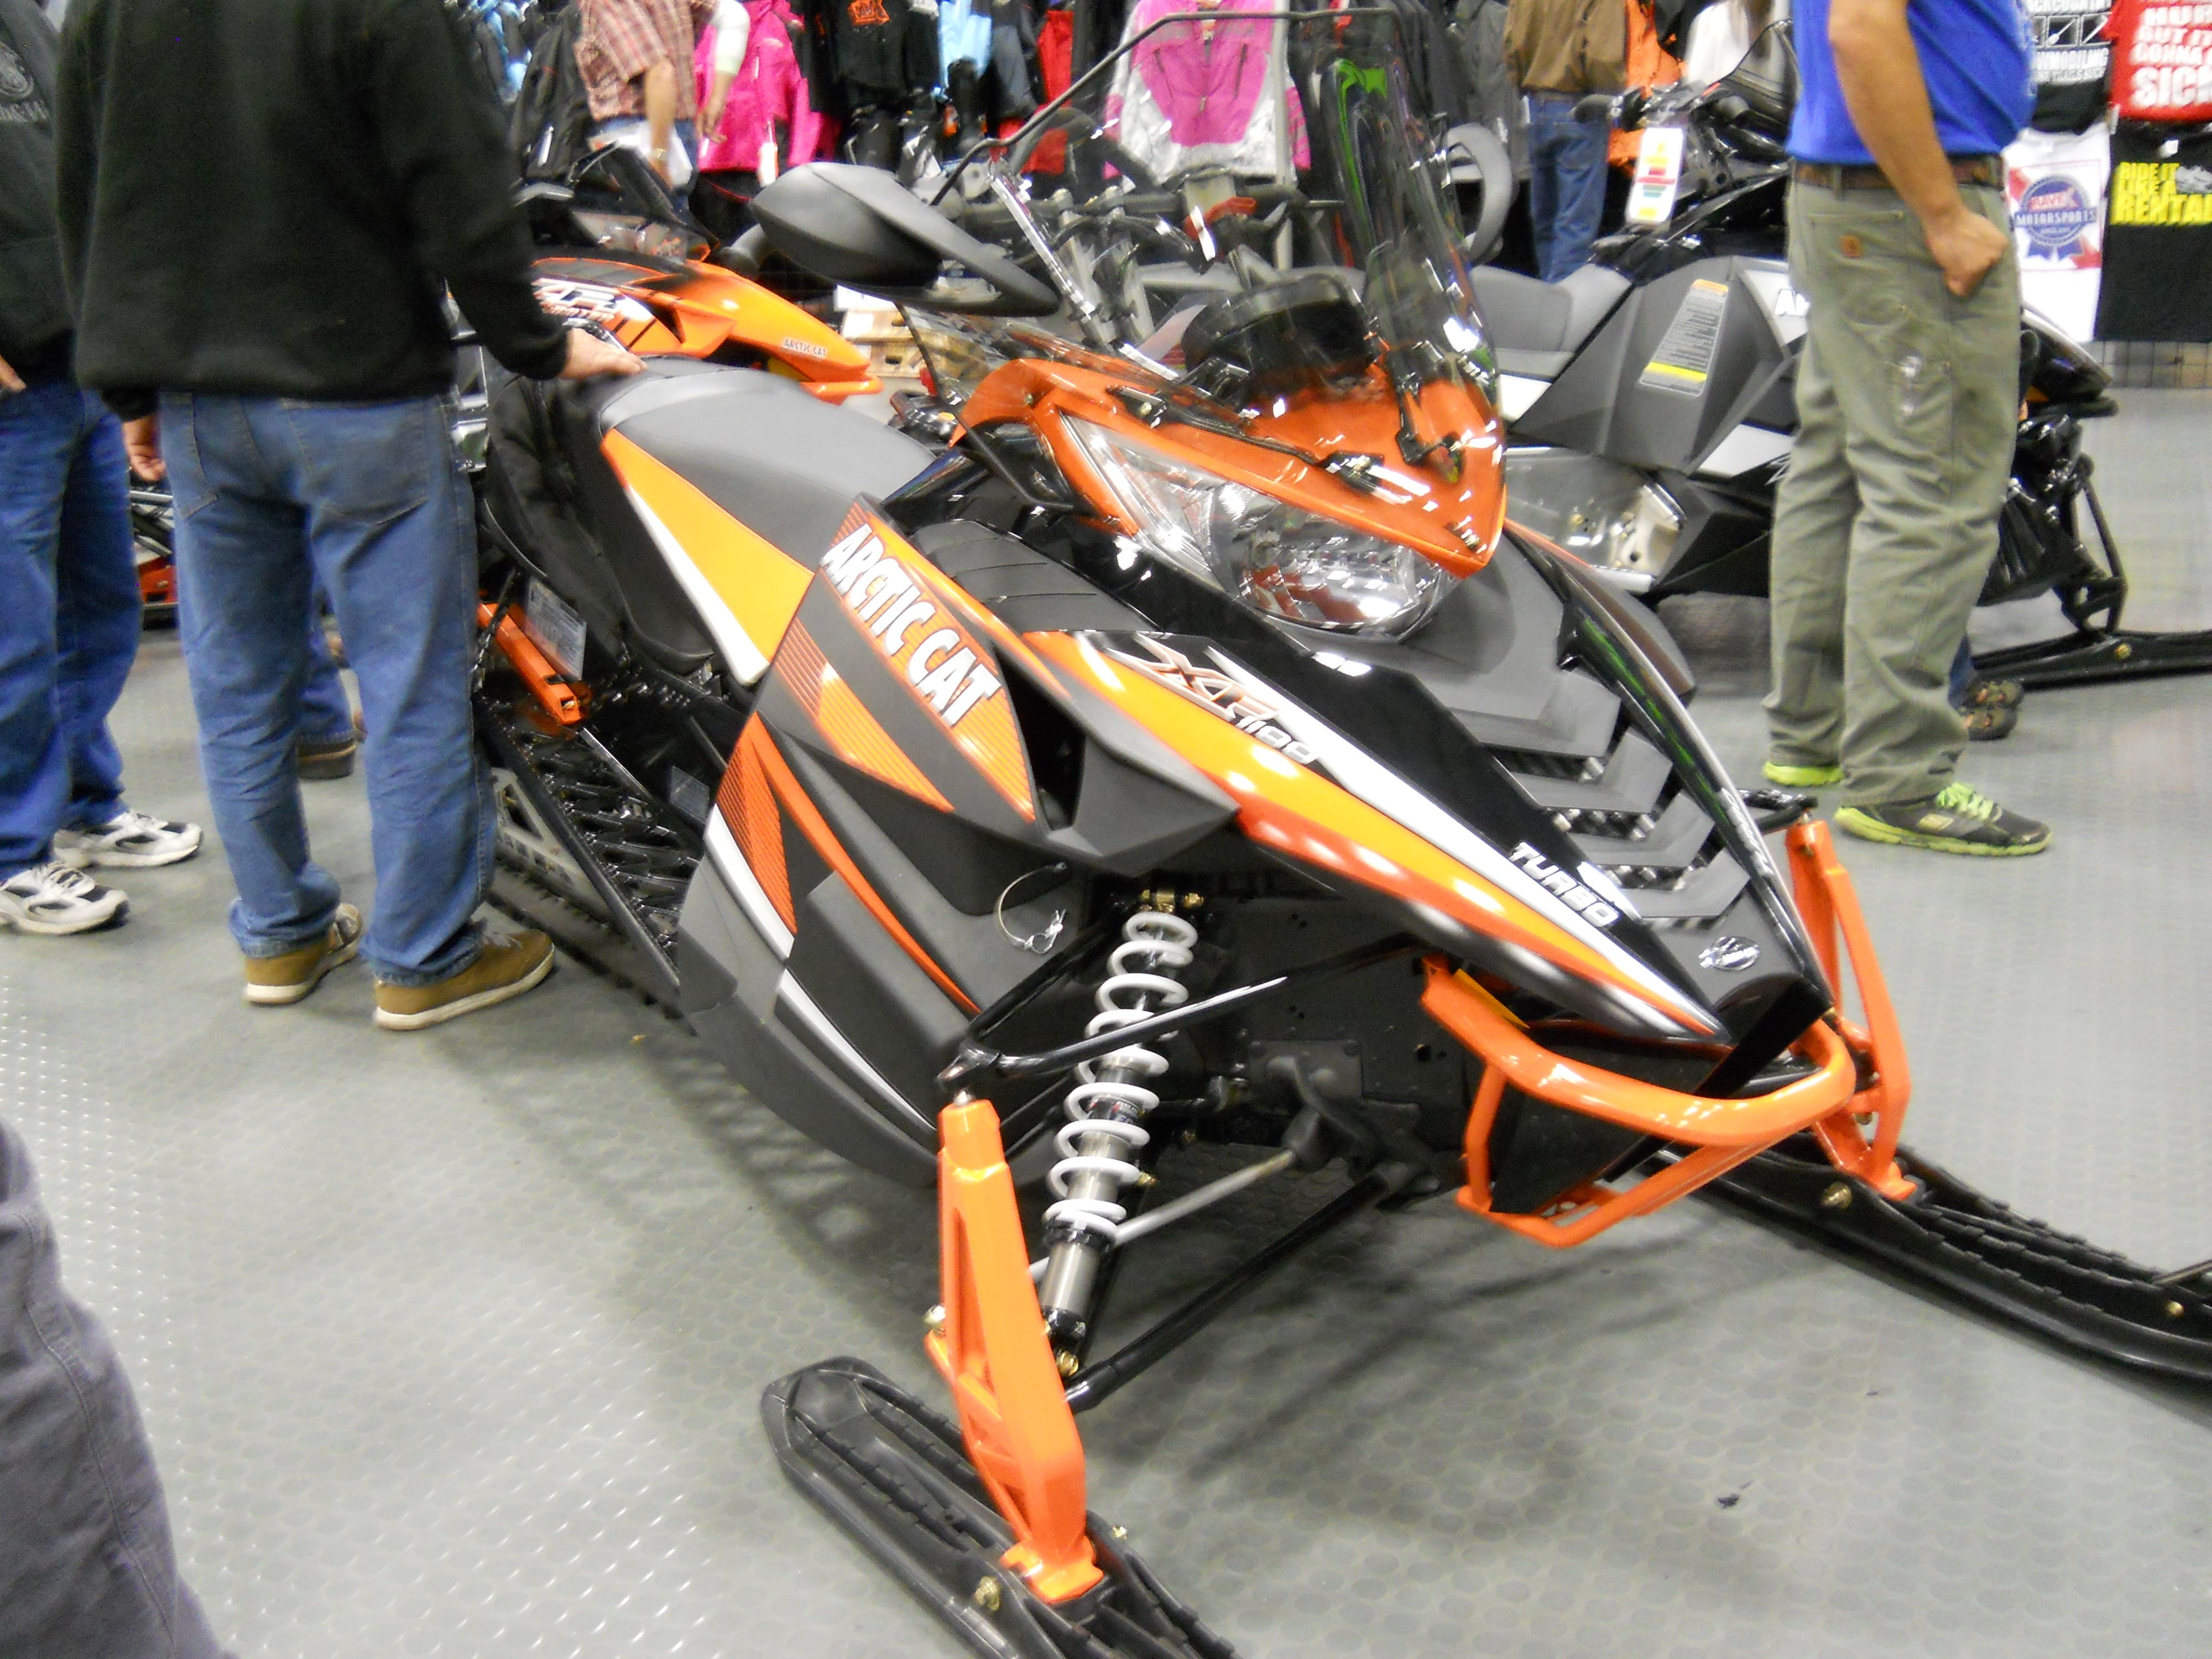 Pin By Sean Haney On Snowmobiles Fourwheelers Snowmobile Arctic Snow Toys